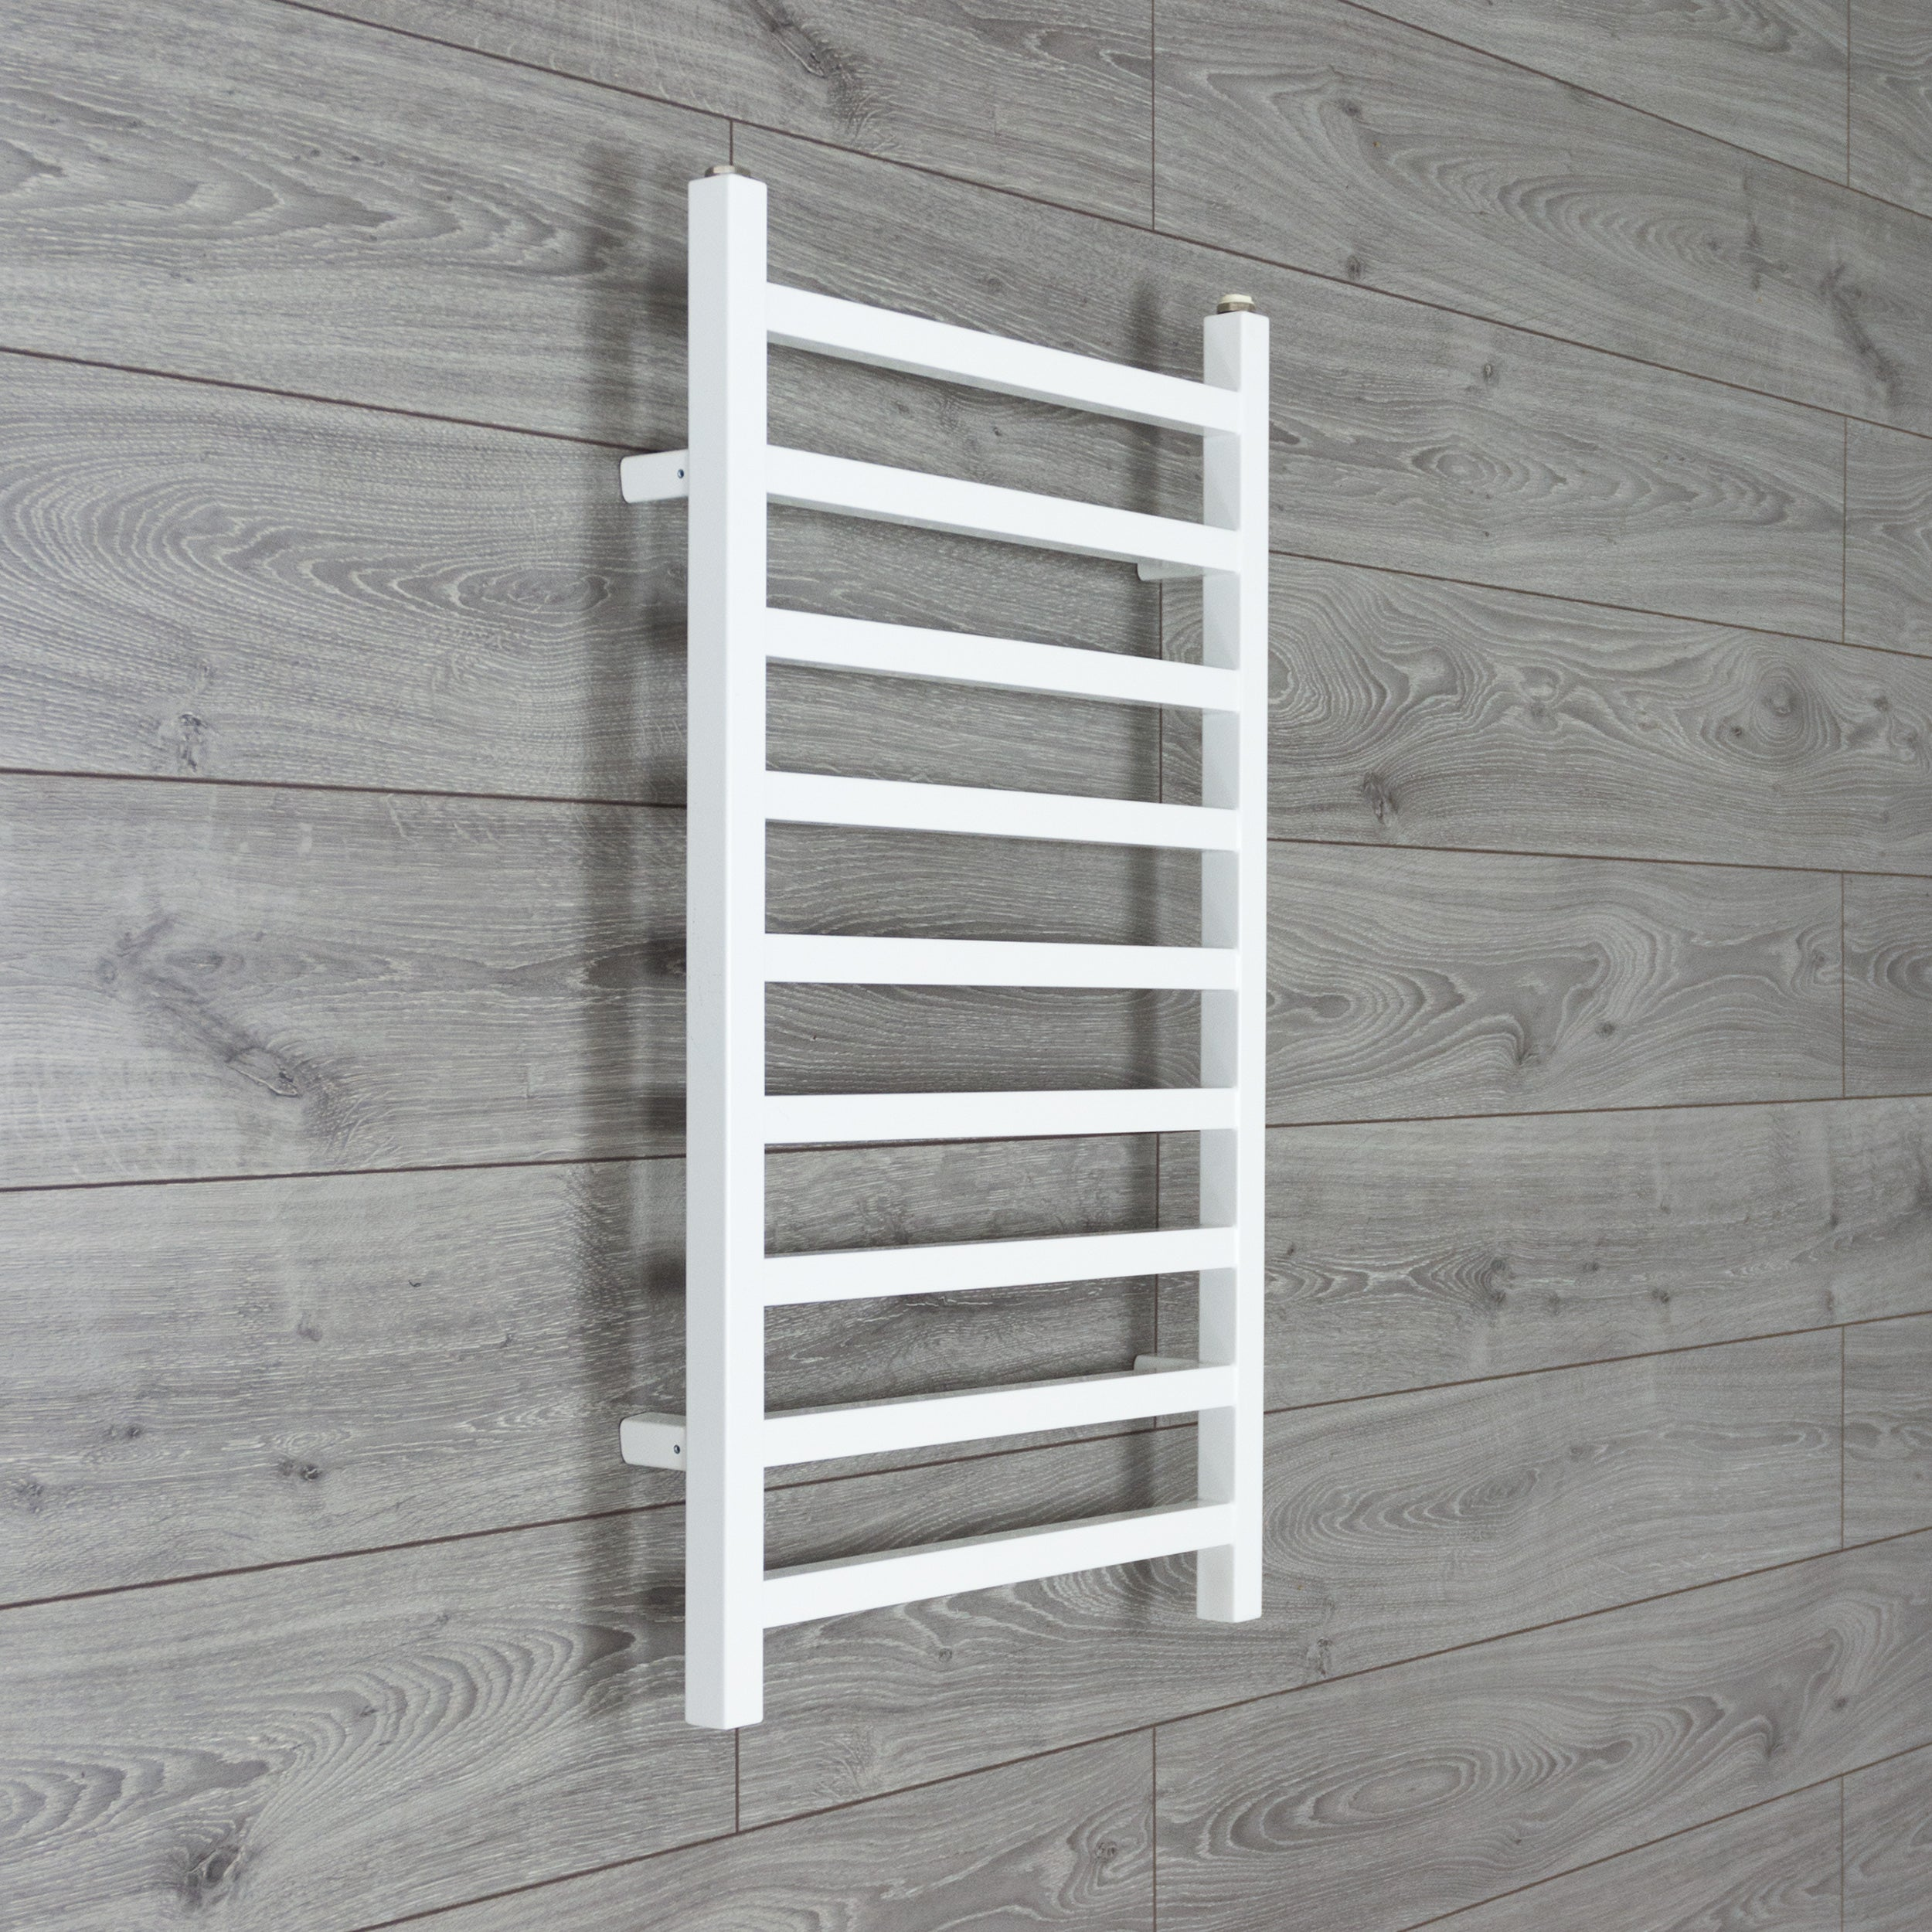 500mm Wide 800mm high Square Tube Designer Heated Bathroom Towel Rail Radiator White Antracite